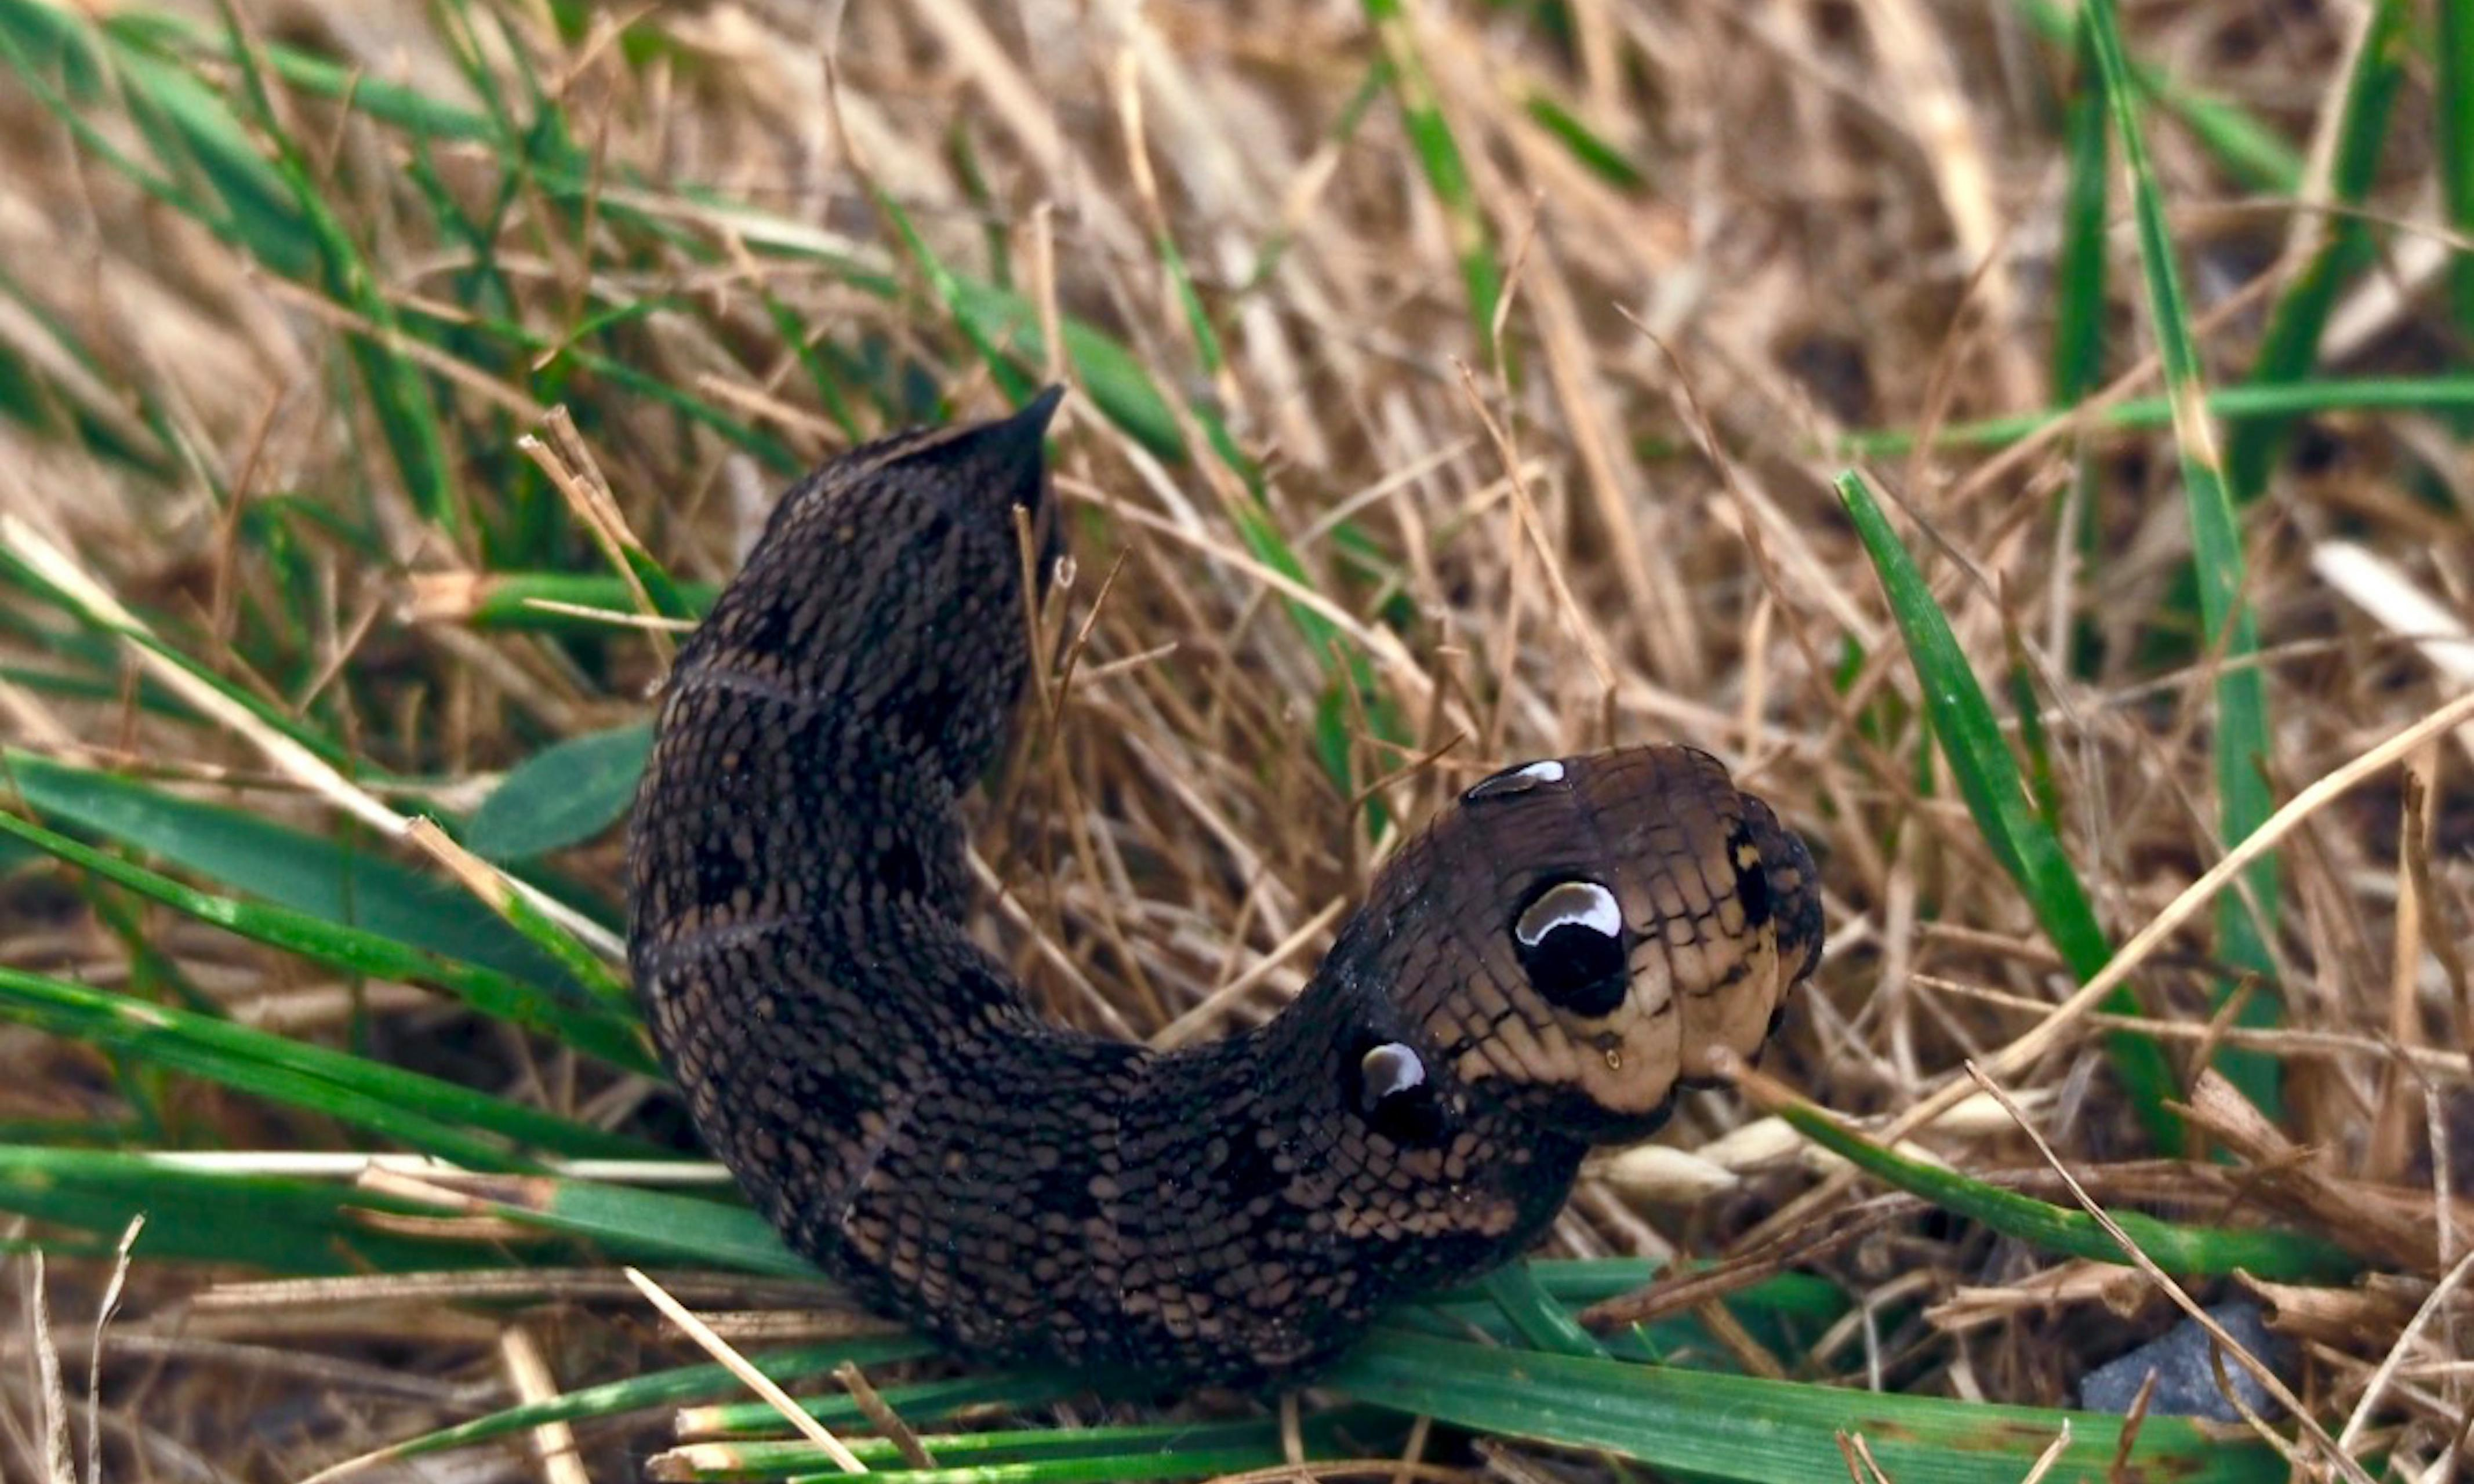 Country diary: a caterpillar transforms into a four-eyed, horned snake